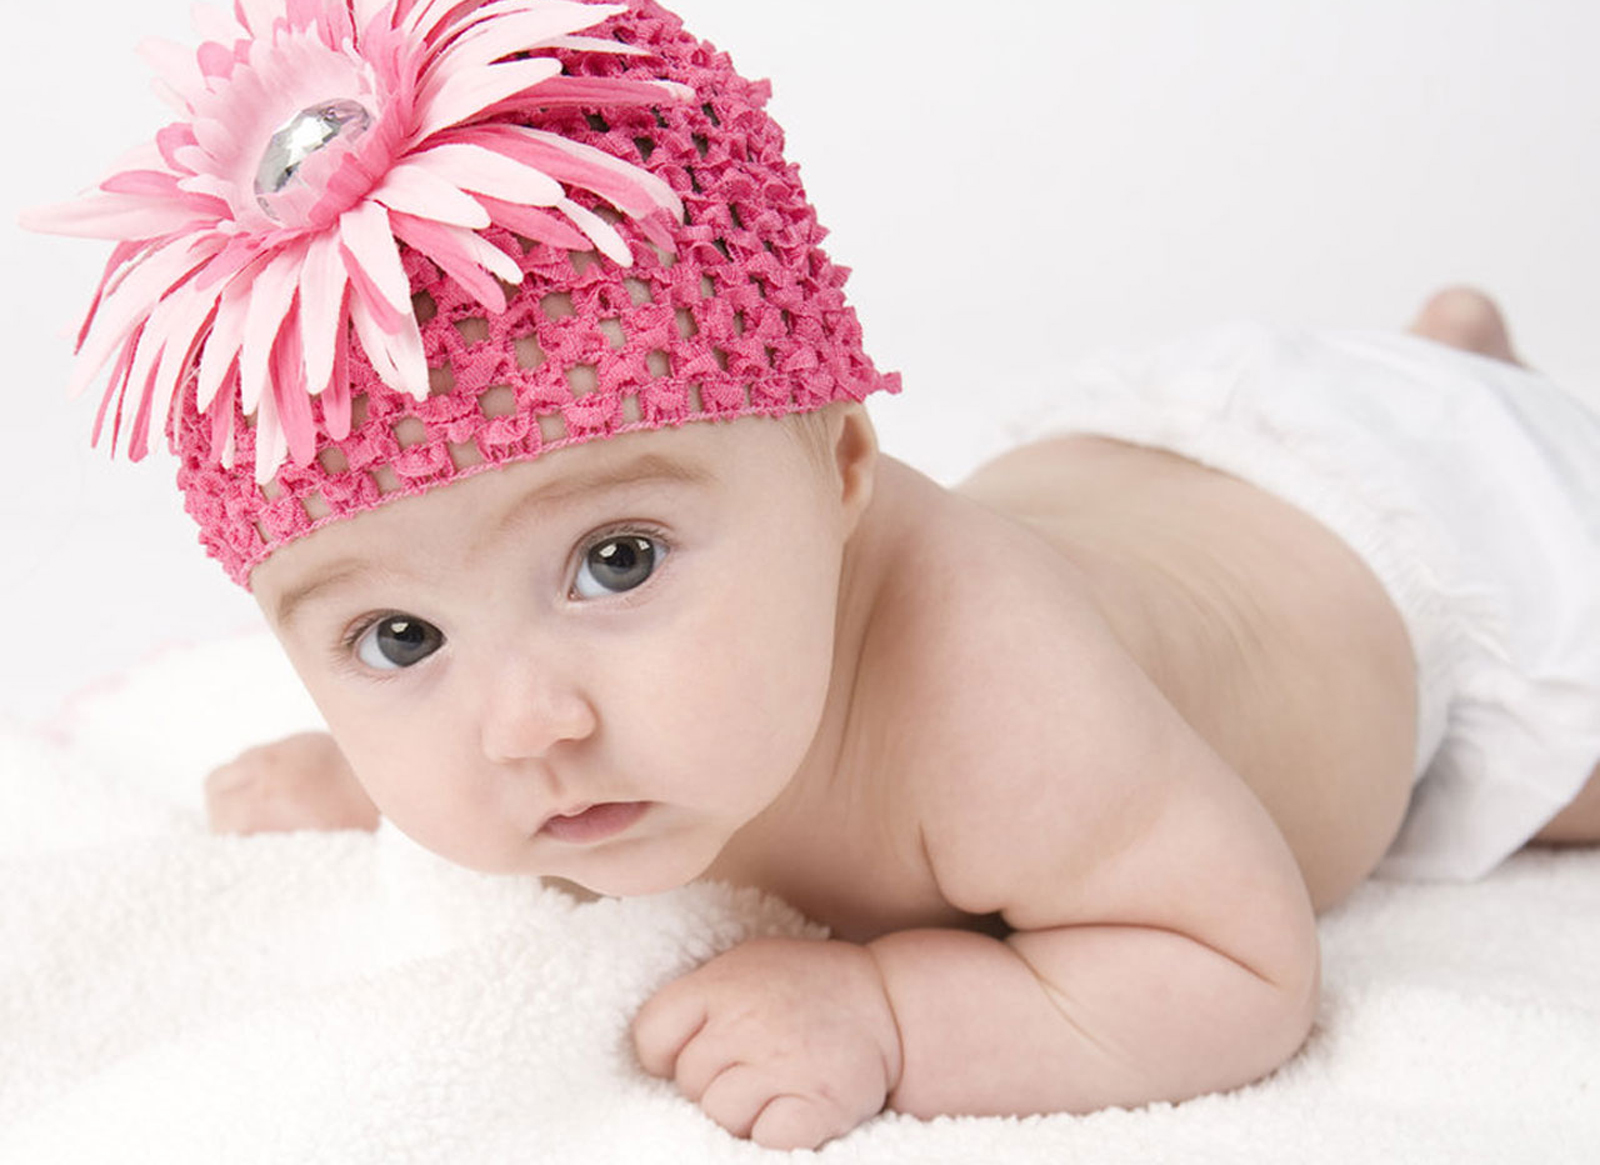 Baby Cute Wallpaper Download